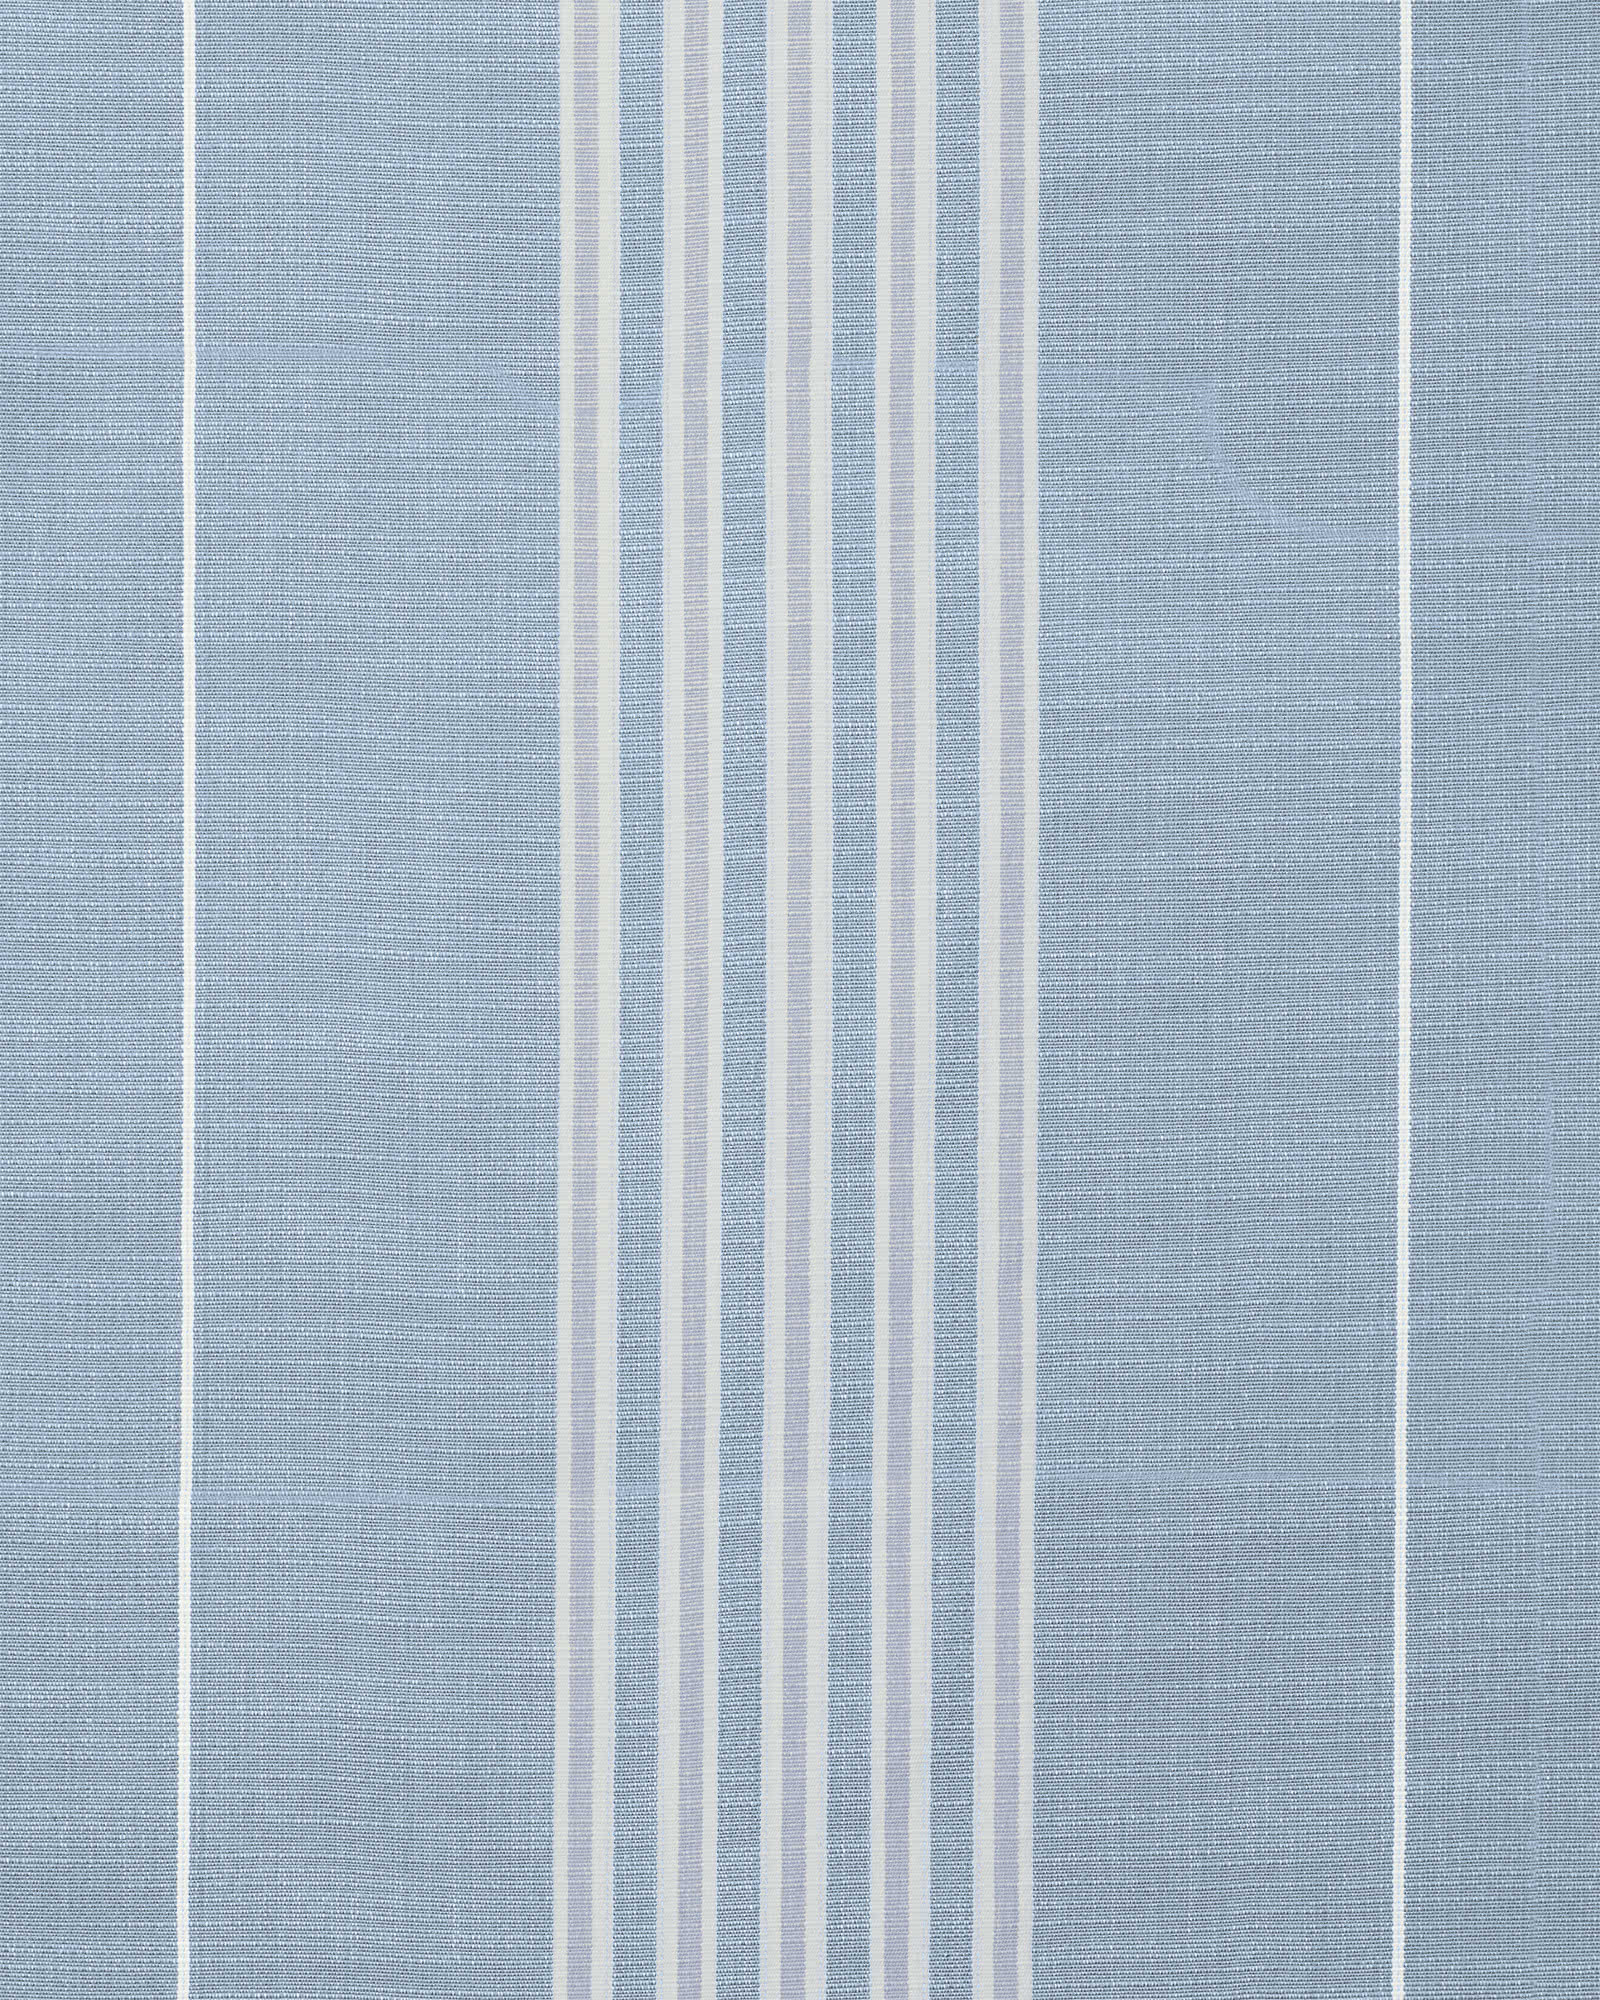 Fabric By the Yard - Perennials Lake Stripe Fabric,